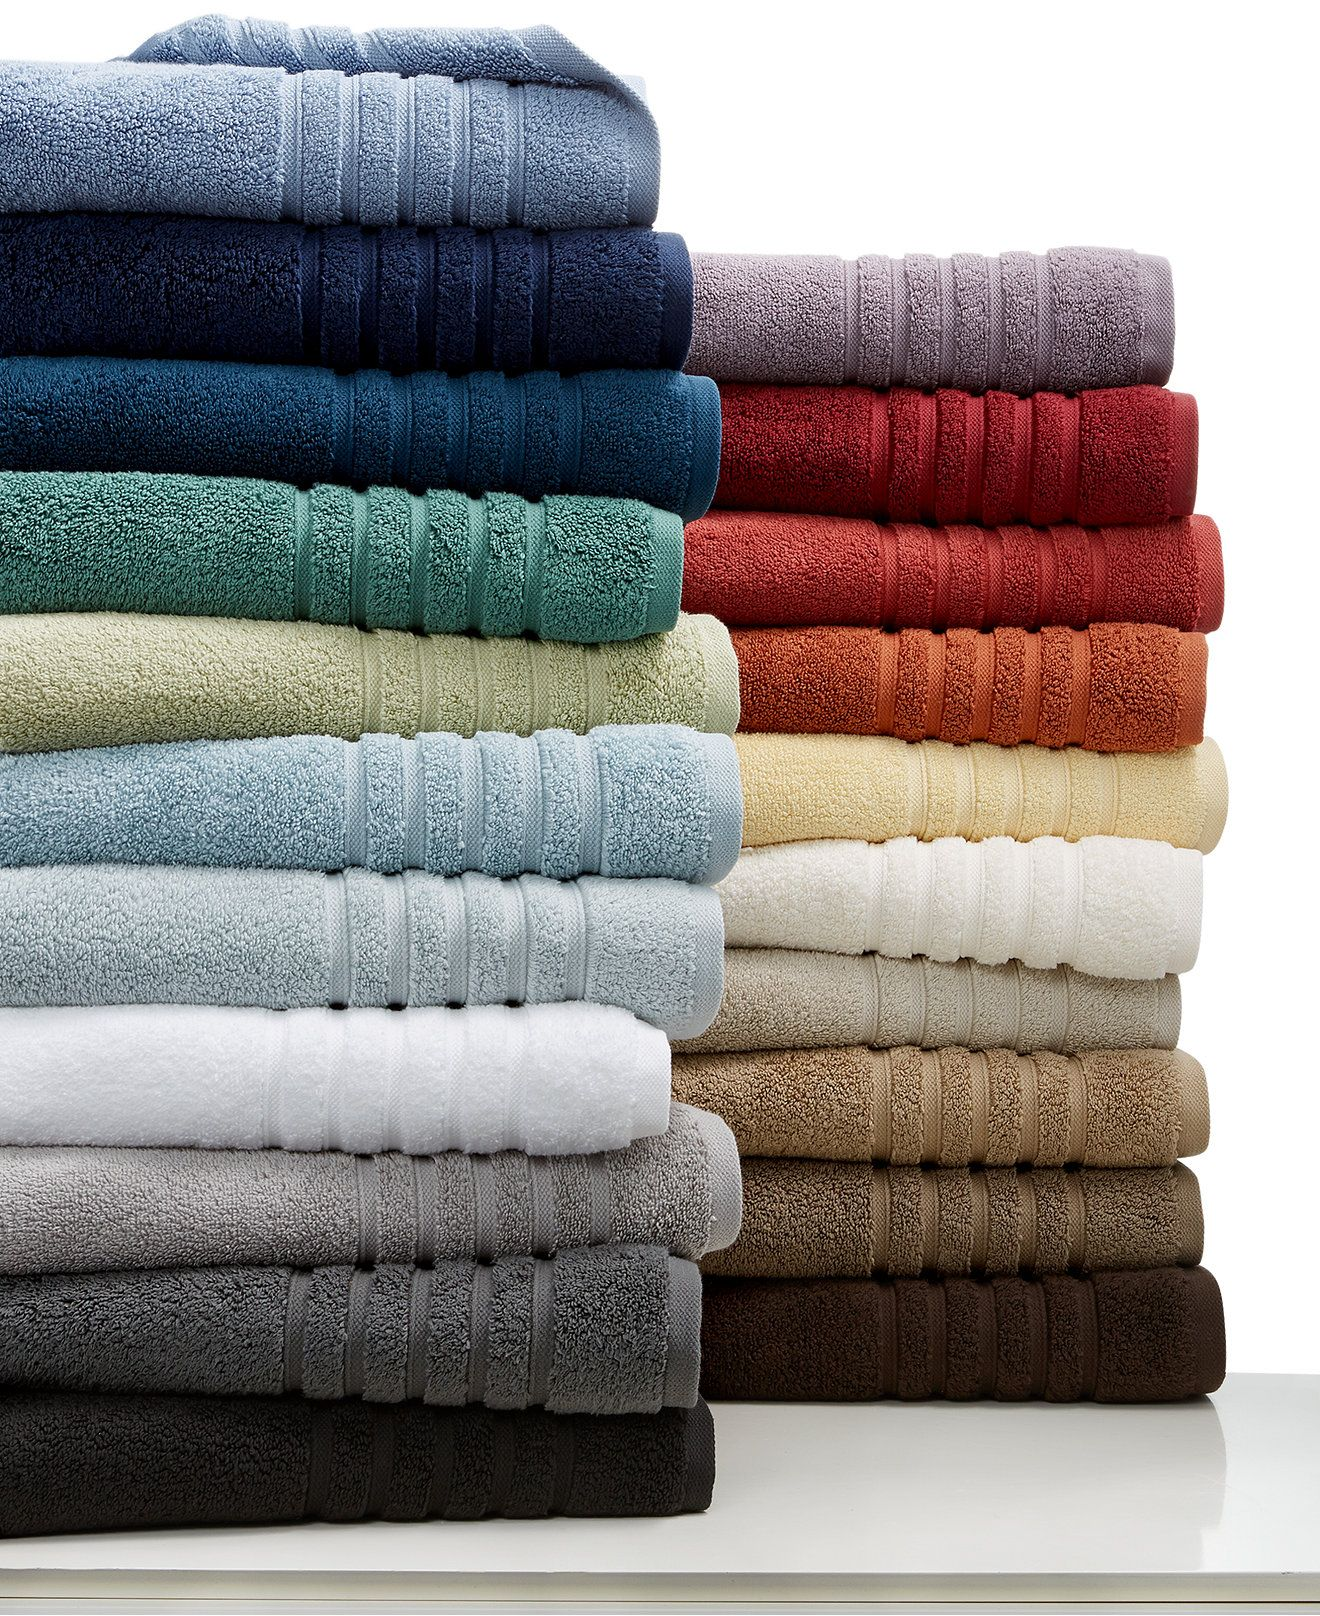 Hotel Collection Ultimate Microcotton 30 X 56 Bath Towel Created For Macy S Reviews Bath Towels Bed Bath Macy S In 2020 Bath Towels Best Bath Towels Bath Towel Sets